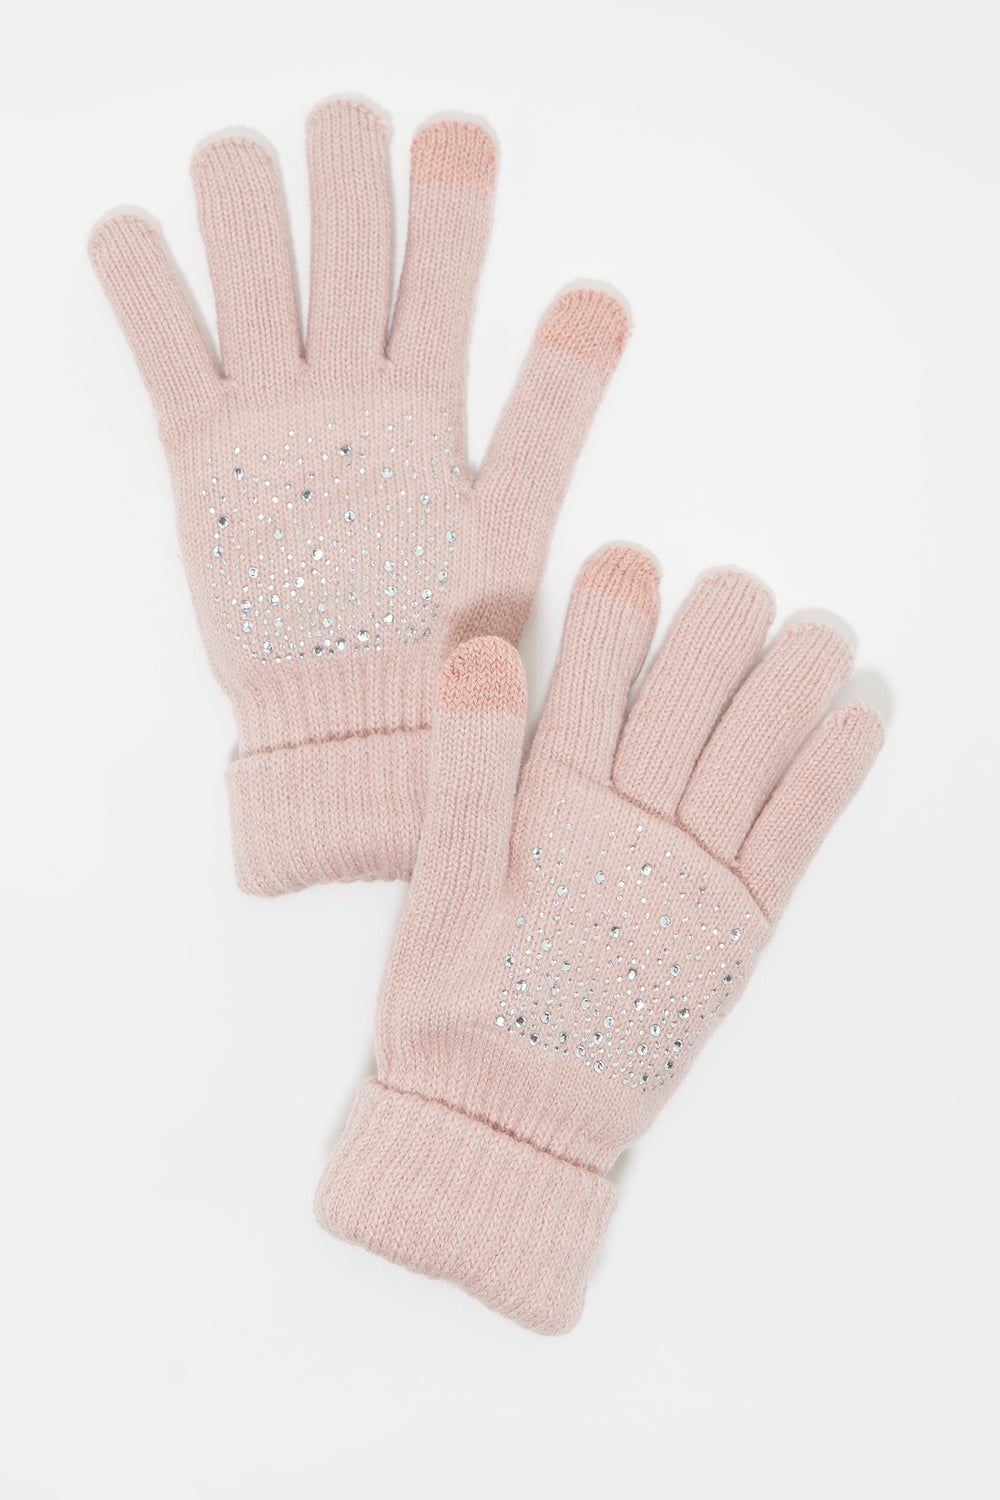 Knit Rhinestone Touchscreen Glove Rose